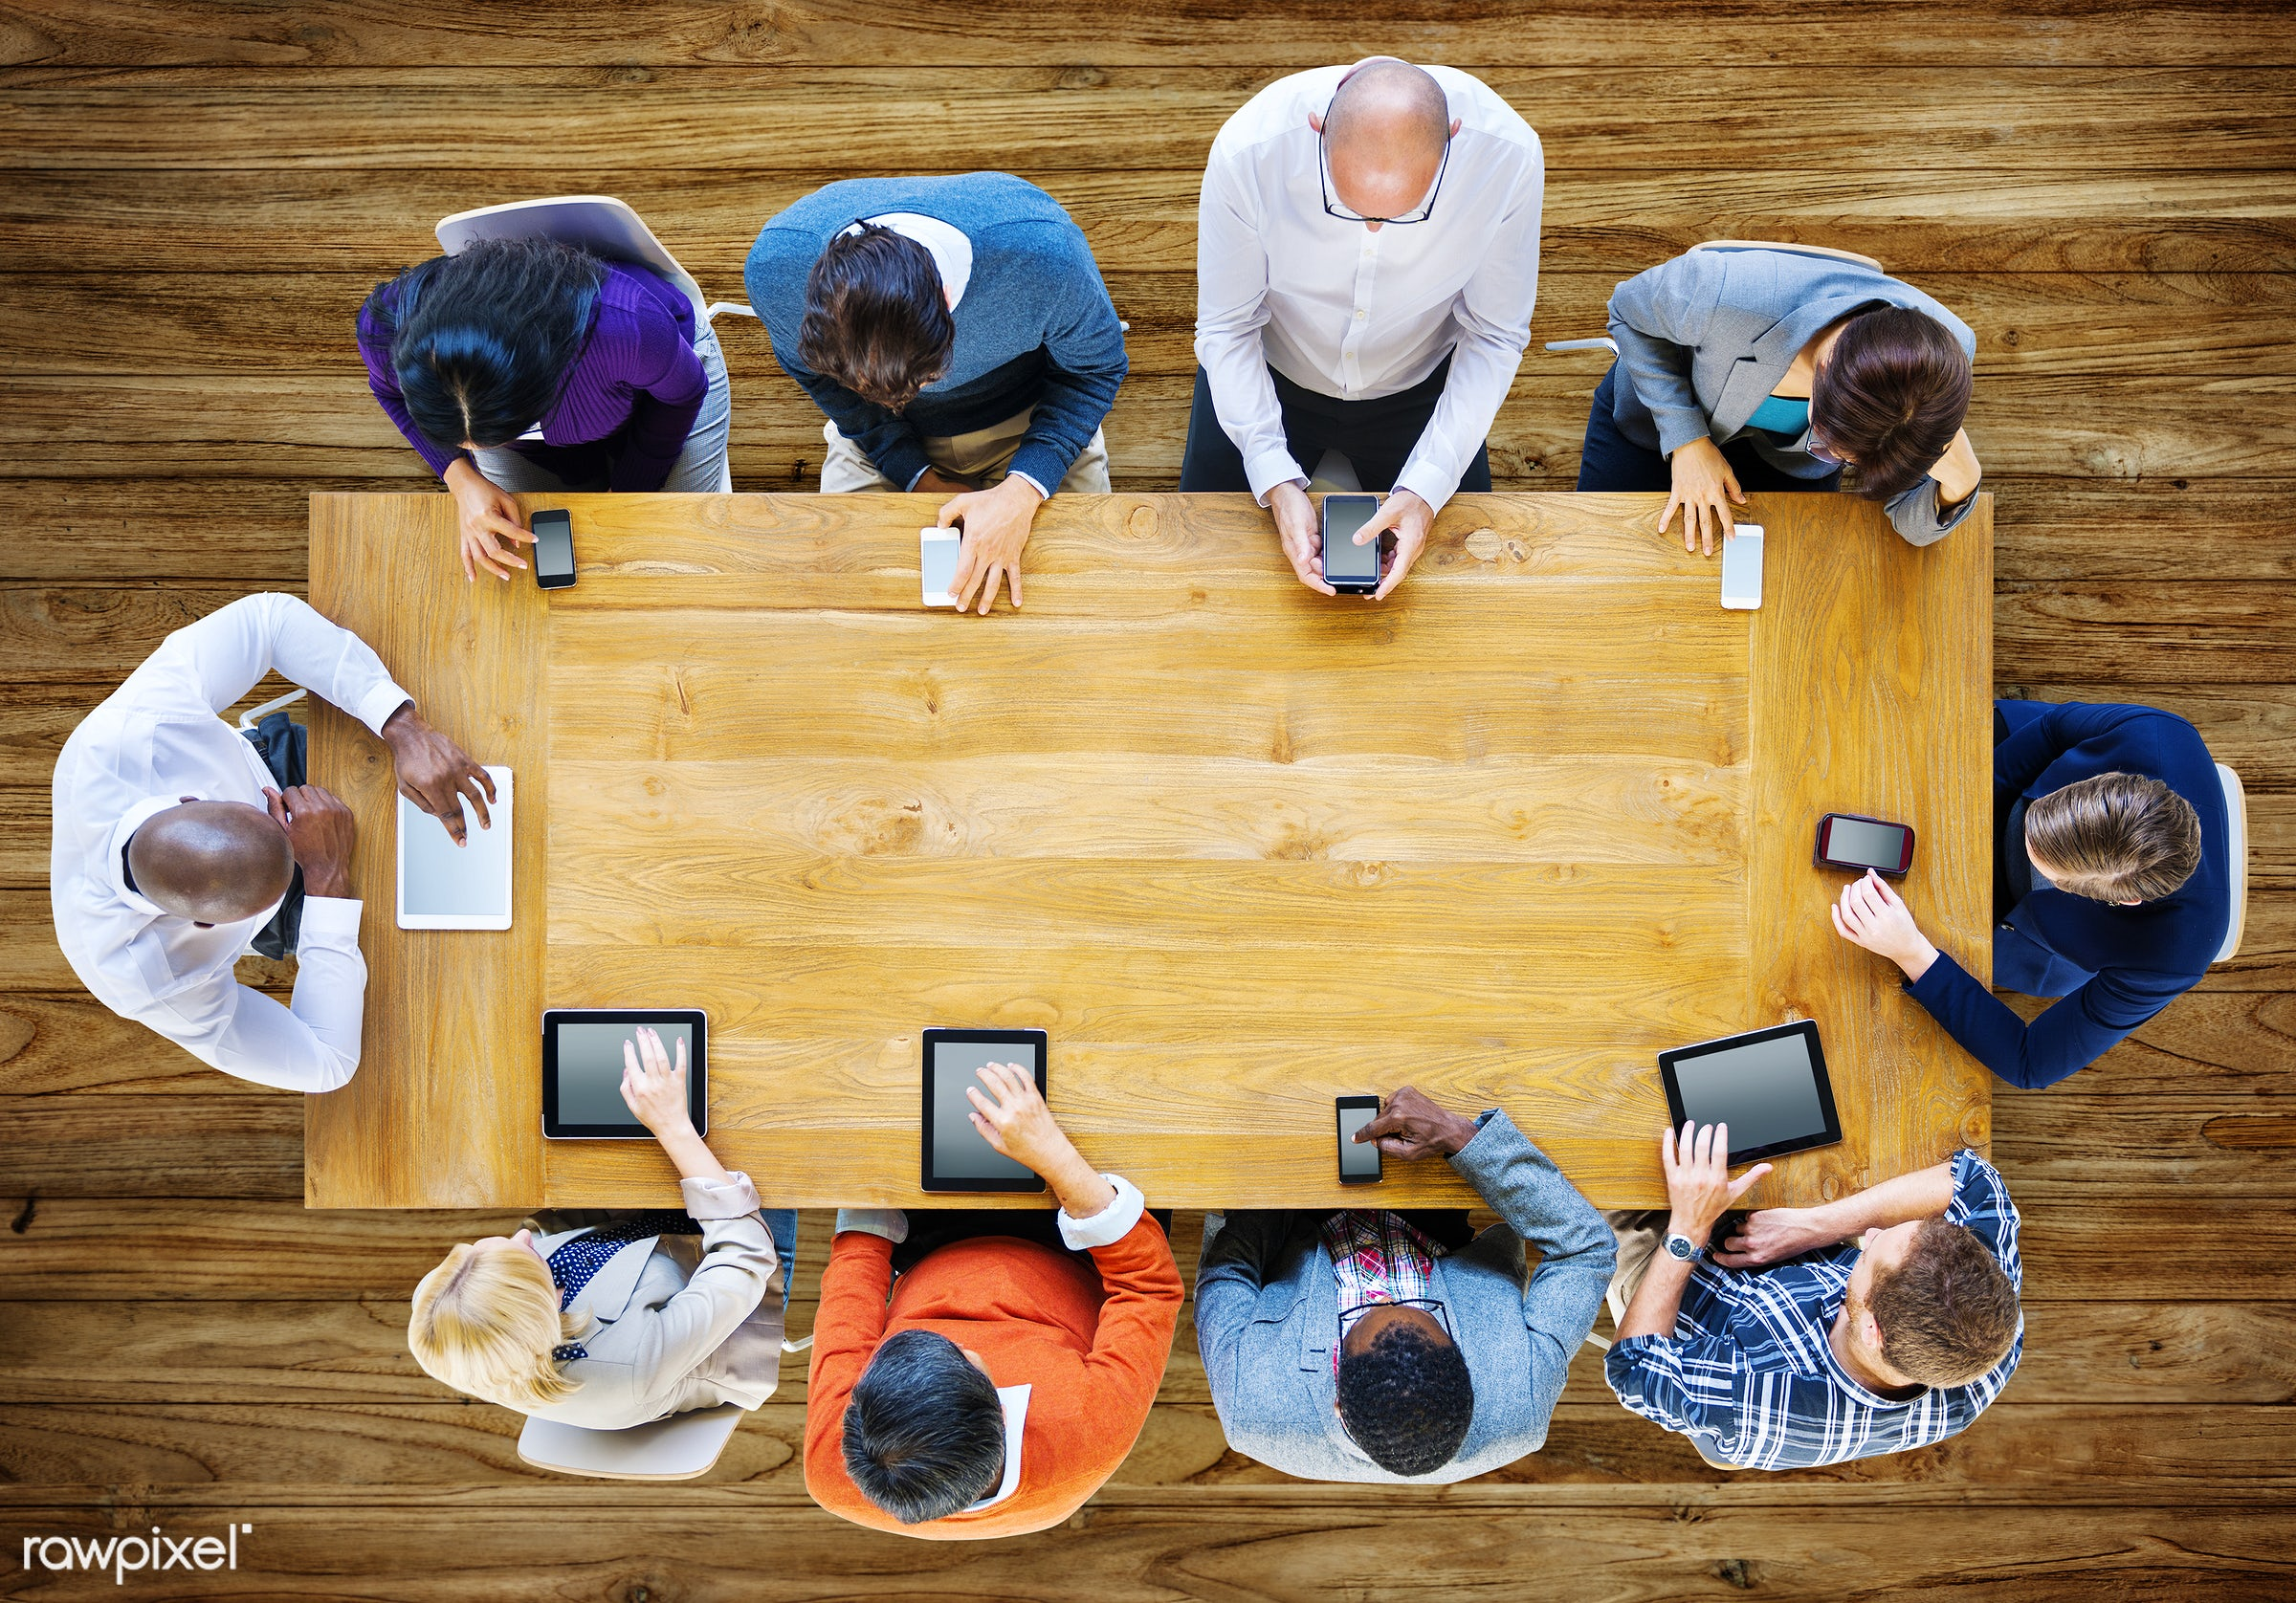 mobility, aerial view, backgrounds, brainstorming, business, business people, casual, close-up, communication, concrete...